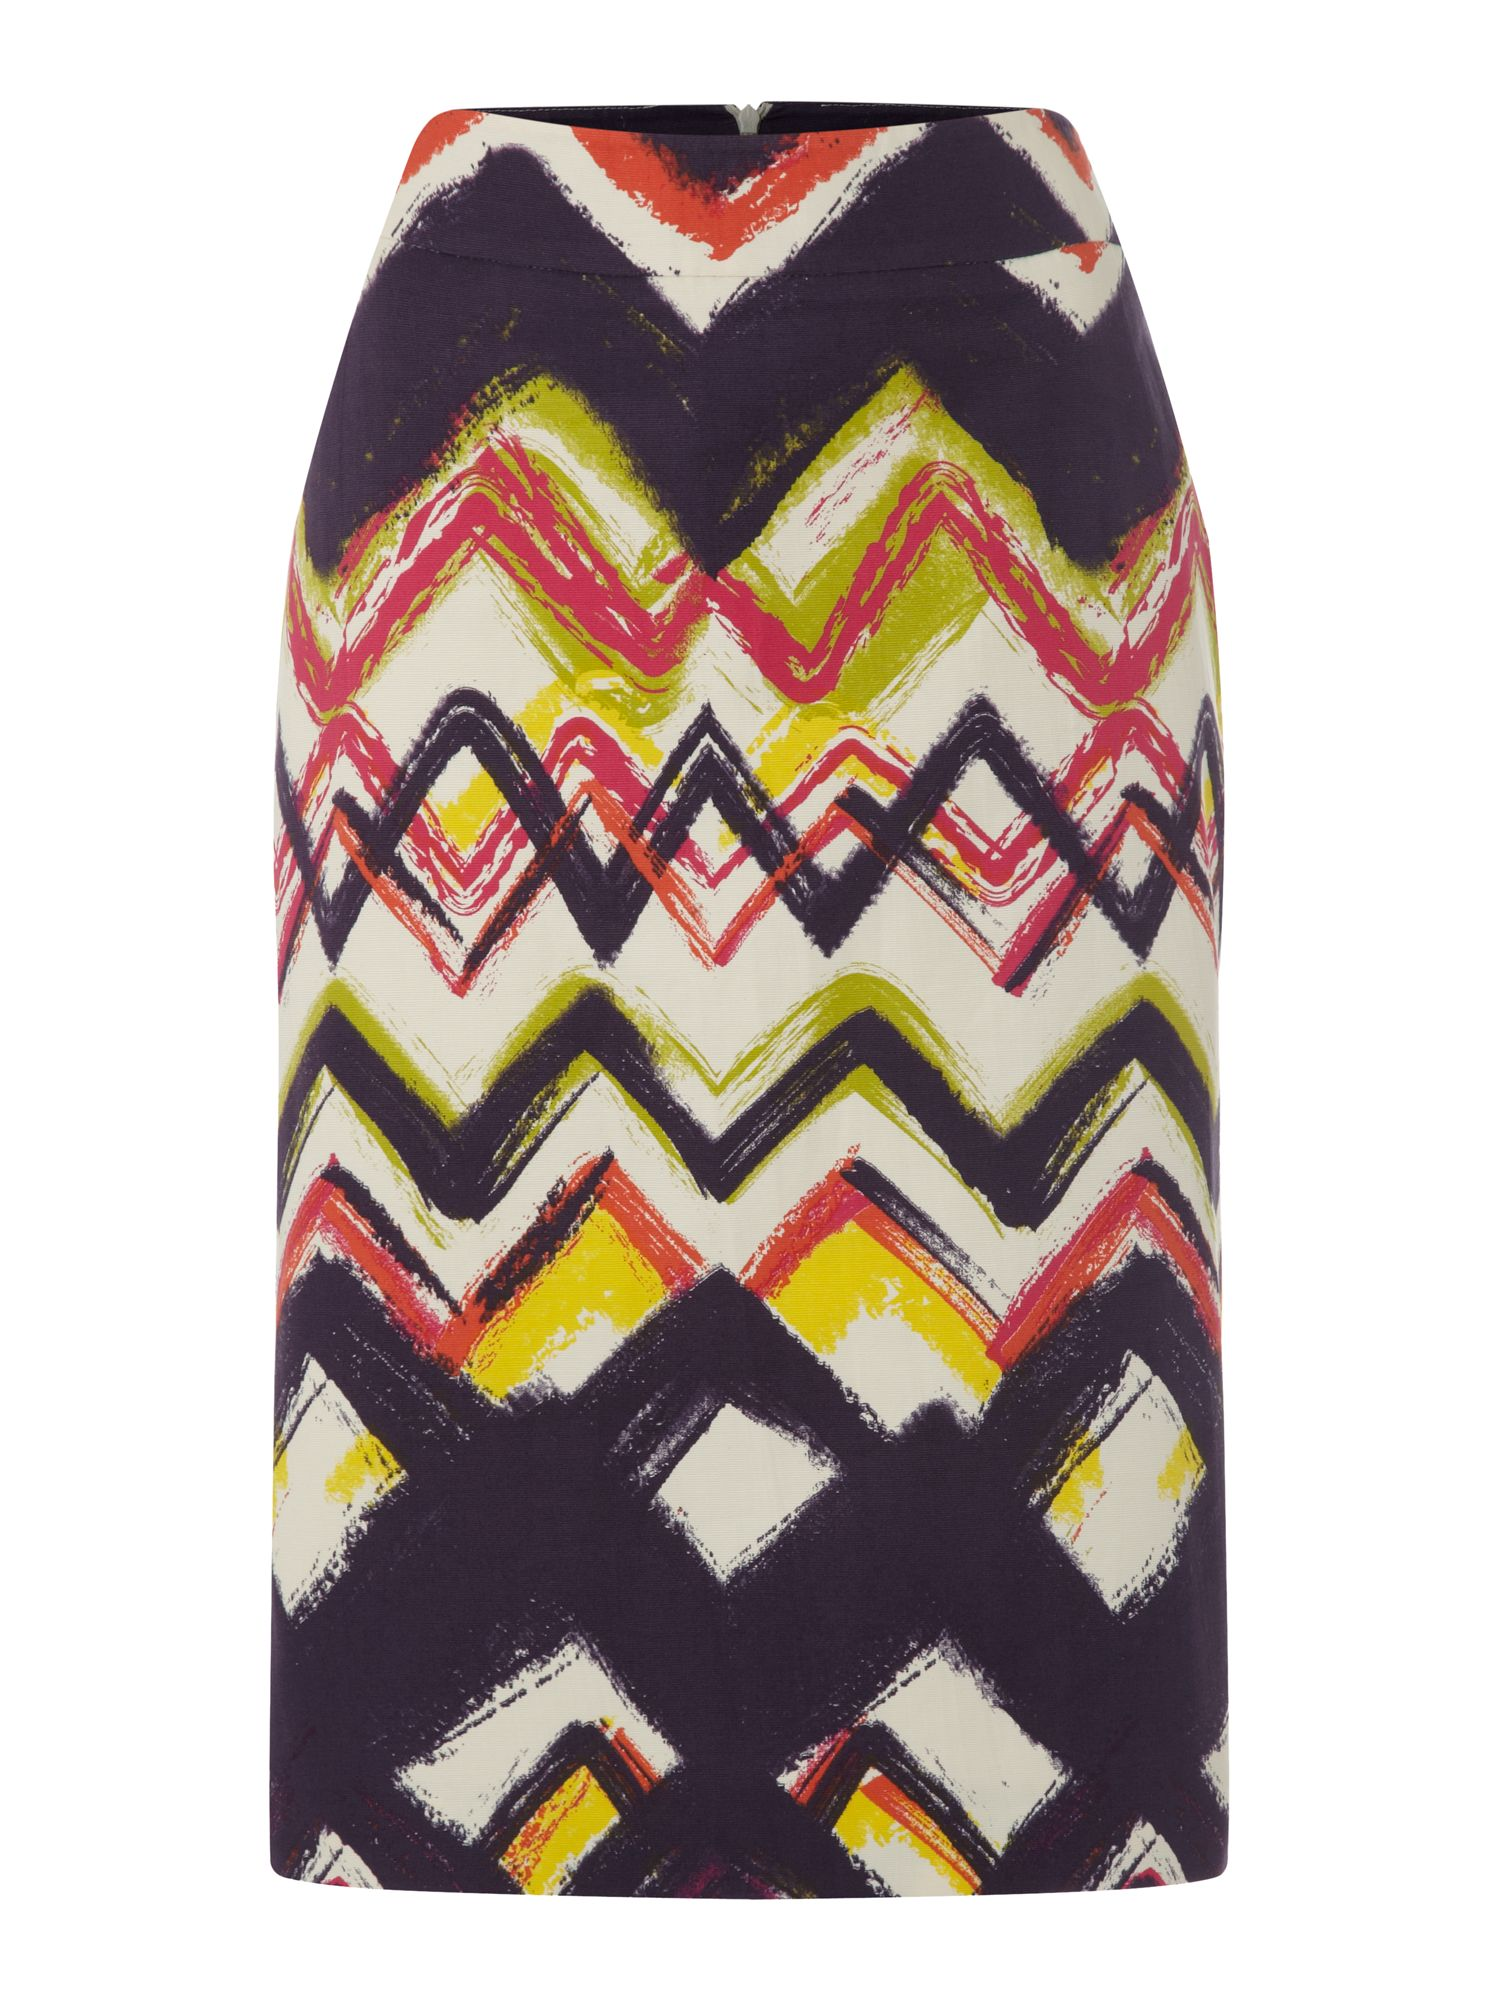 Zig zag pencil skirt